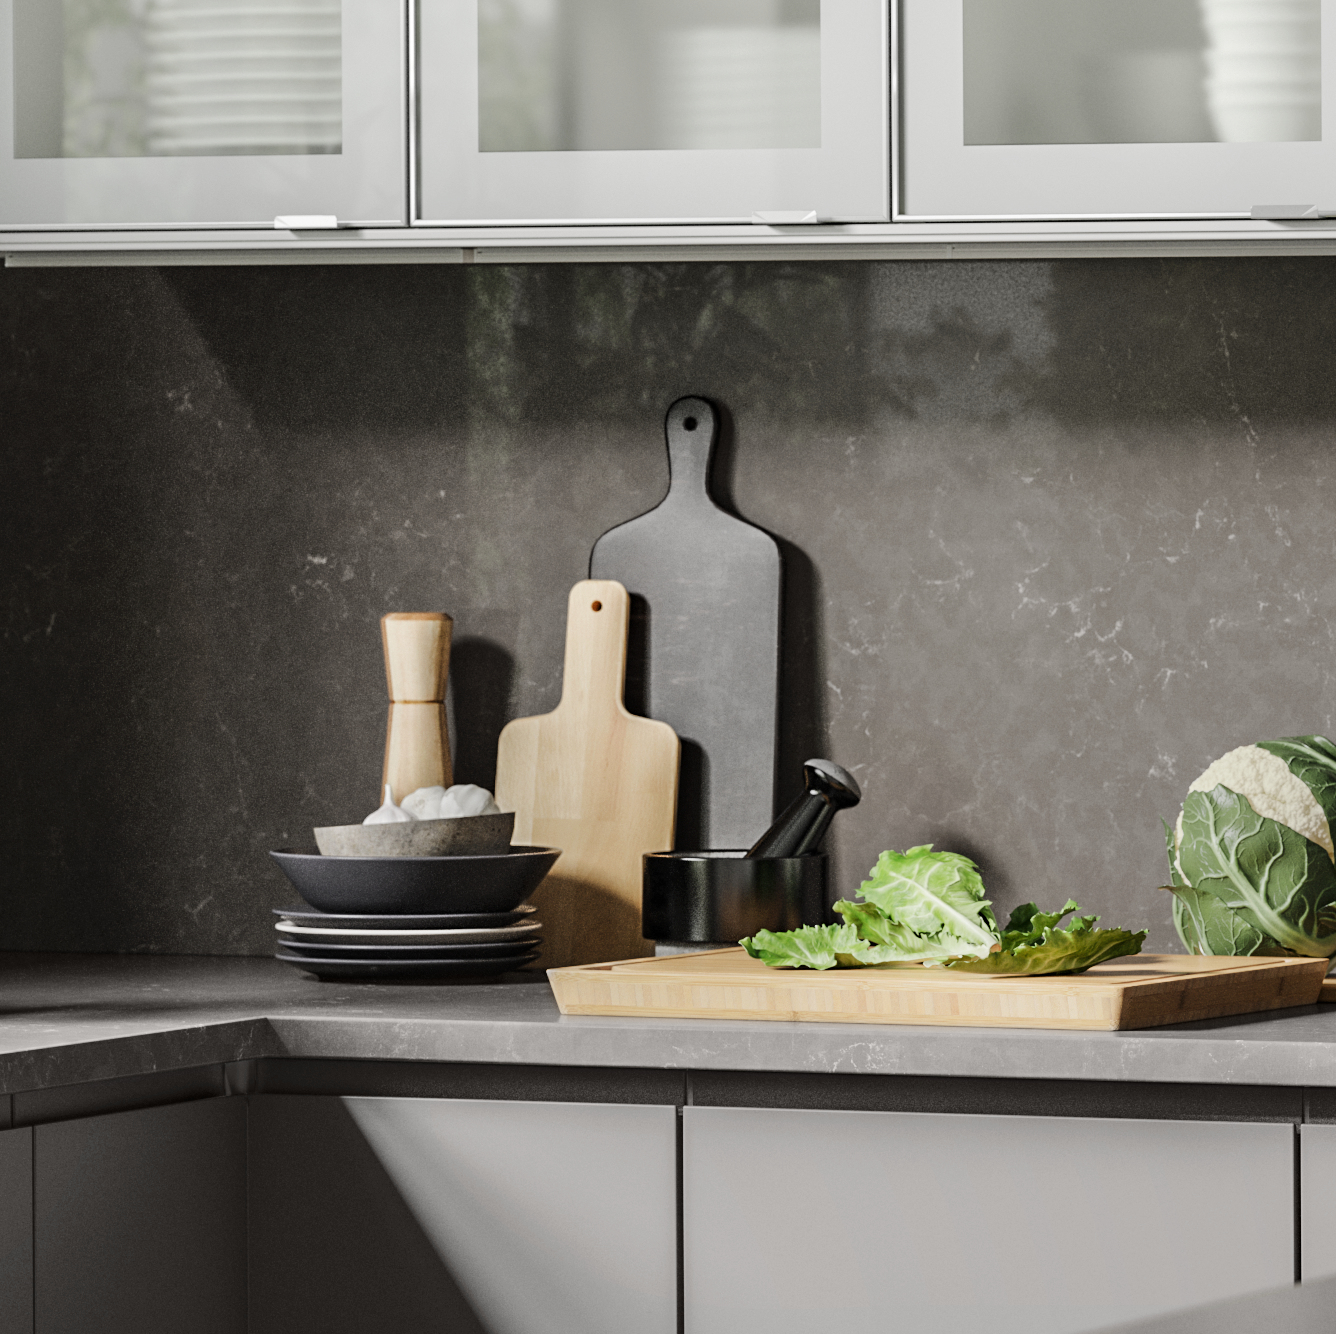 A black marbled effect splasback with two cutting boards leaning on it, and a chopping board with veggies on the worktop.